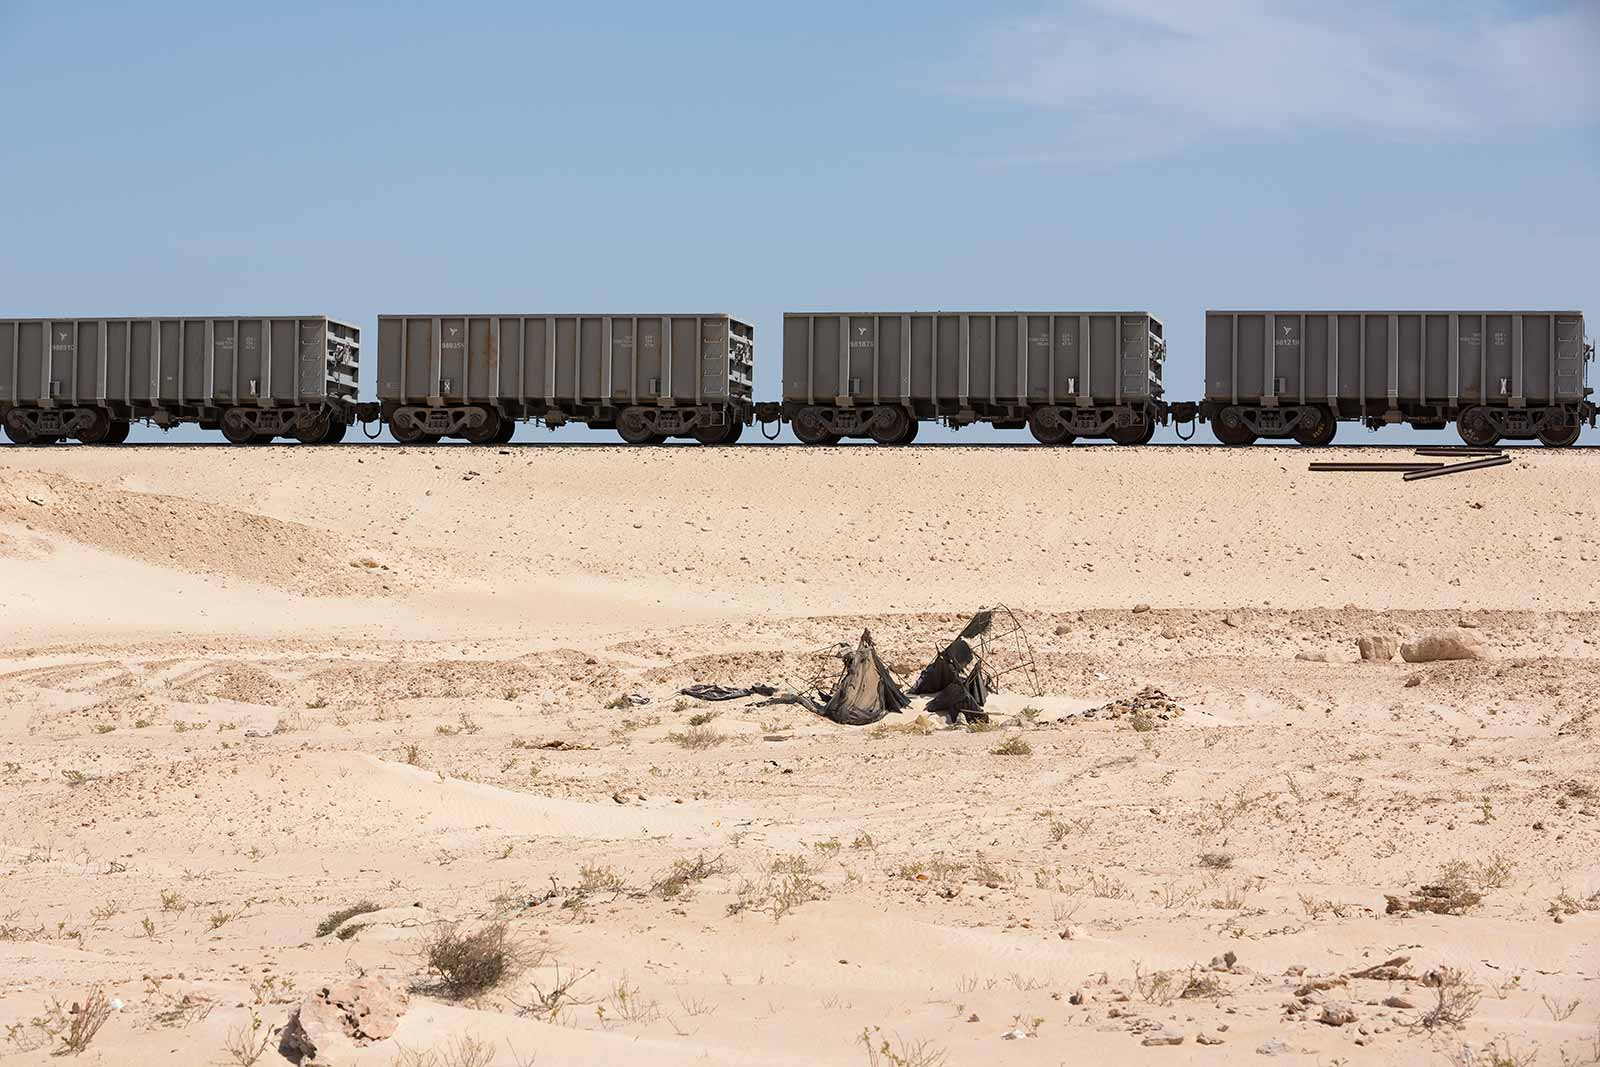 The Mauritanian Railways opened in 1963. It consists of a single, 704 km railway line linking the iron mining centre of Zouérat with the port of Nouadhibou.